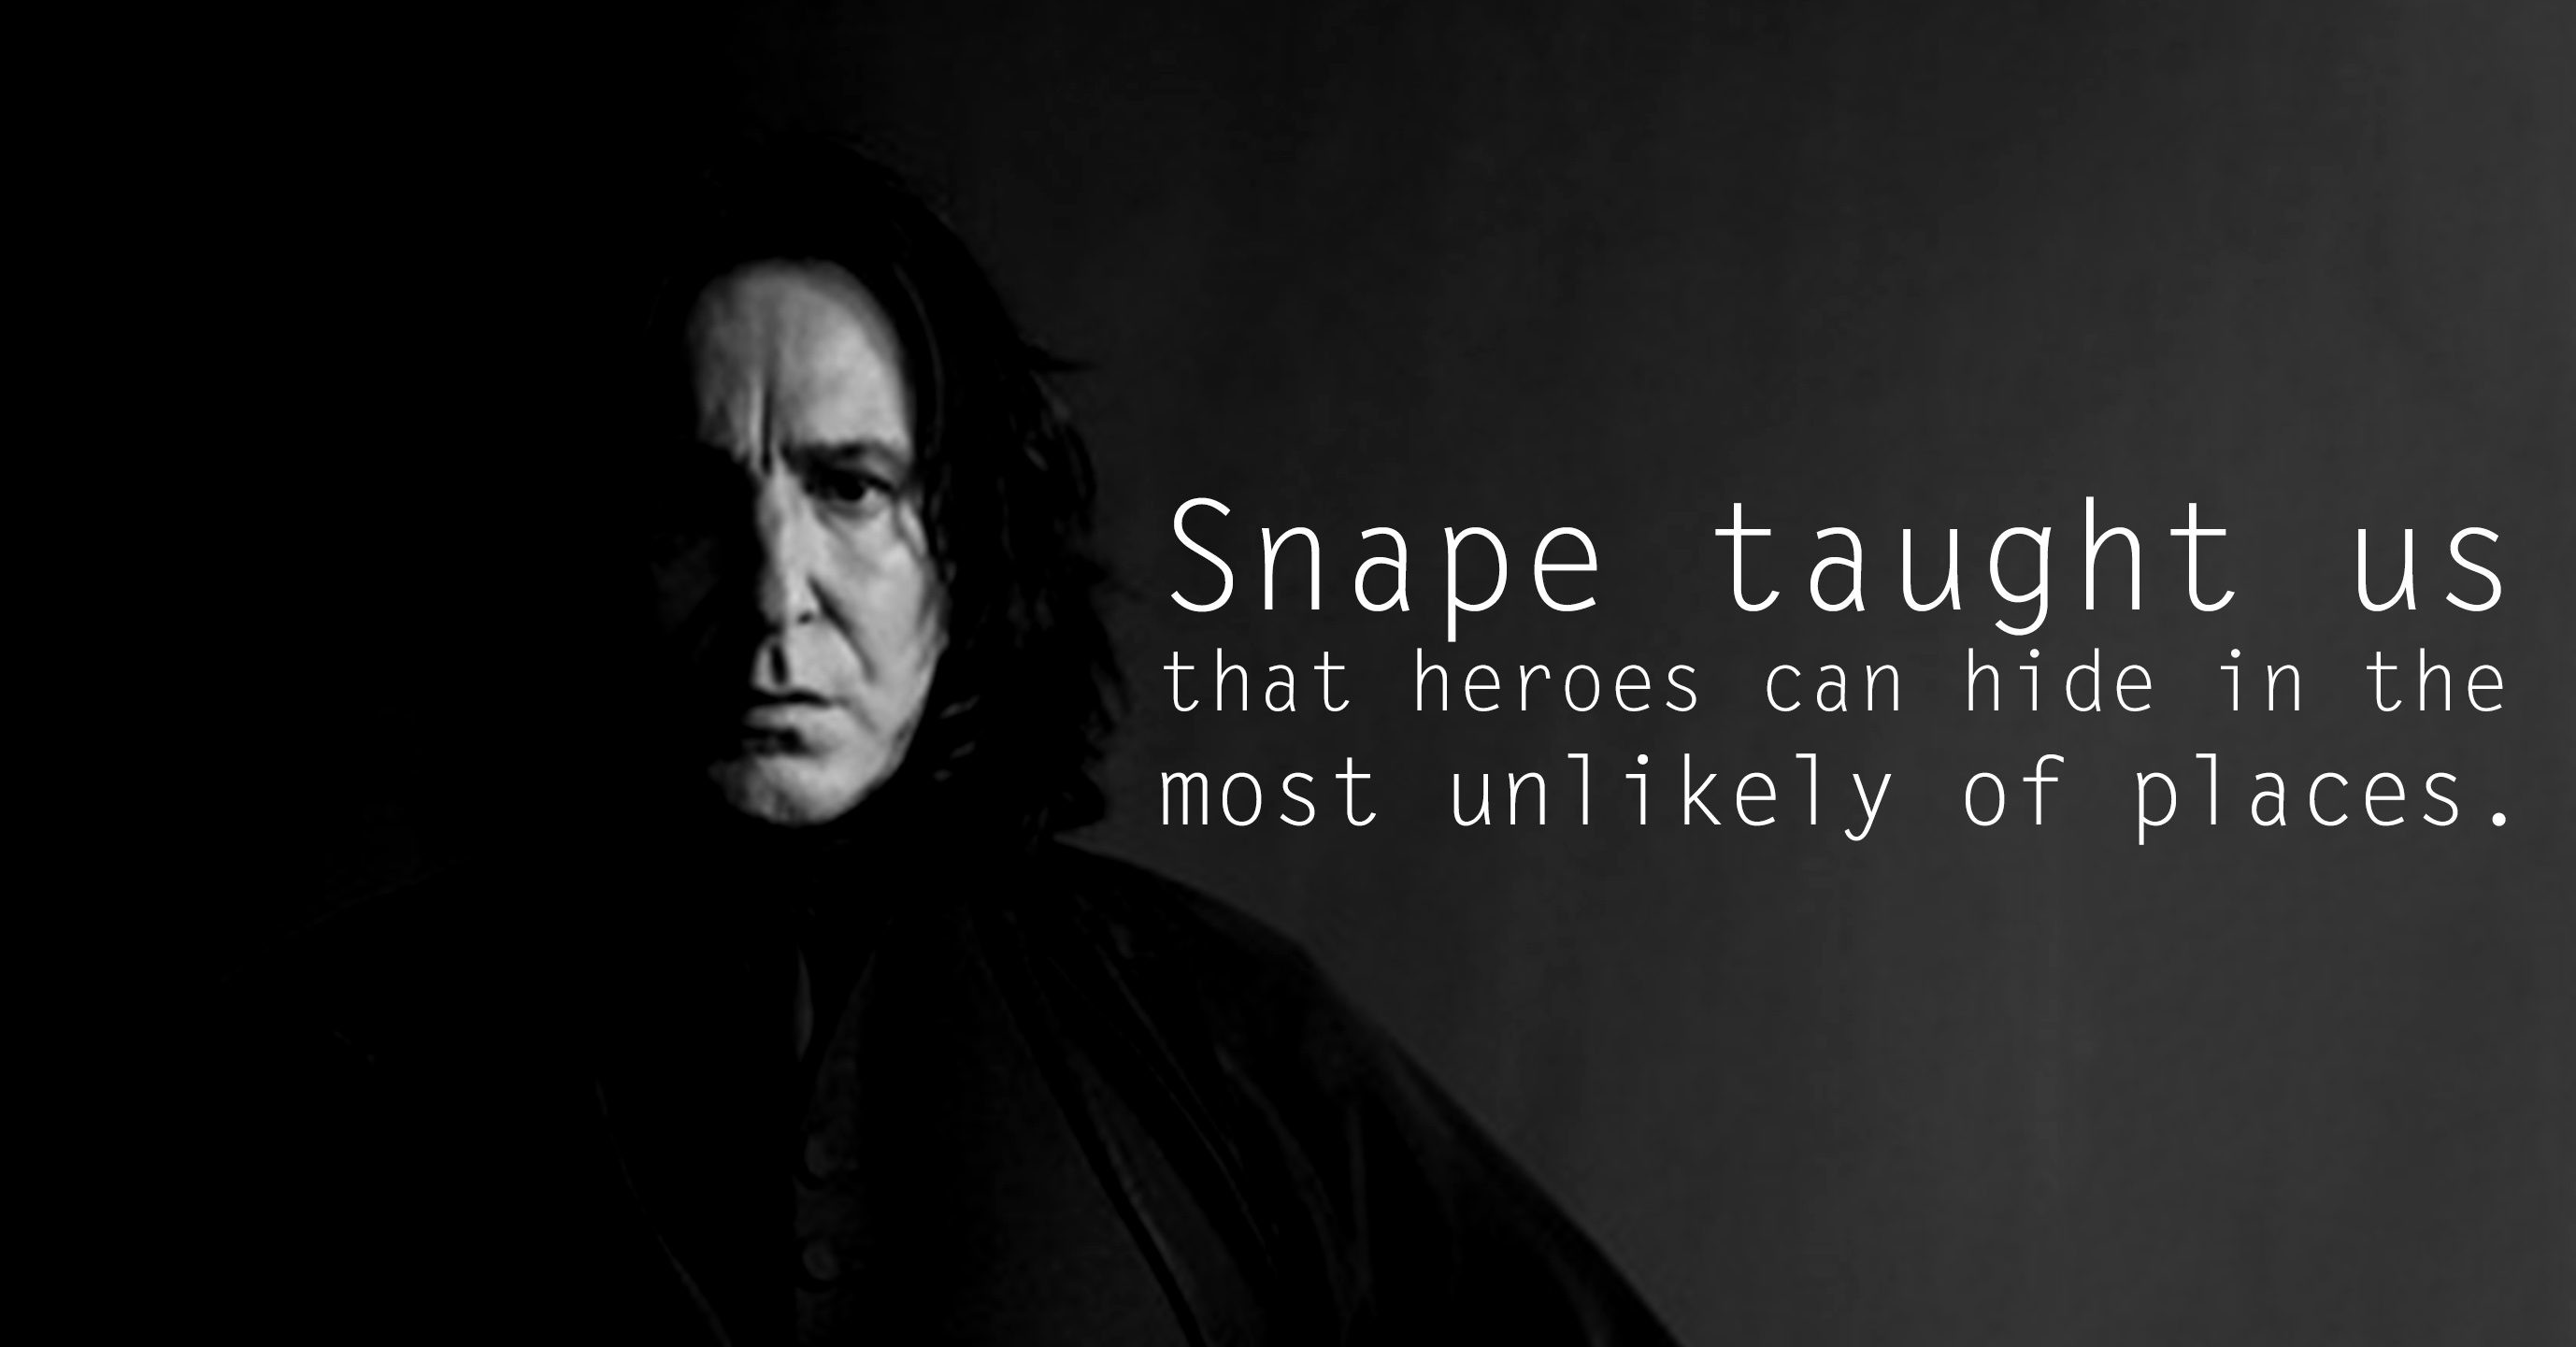 memorable Wallpapers Gallery » Monodomo » Harry Potter Quotes Wallpaper Hd. Harry  Potter Quotes Wallpapers High Quality Resolution.